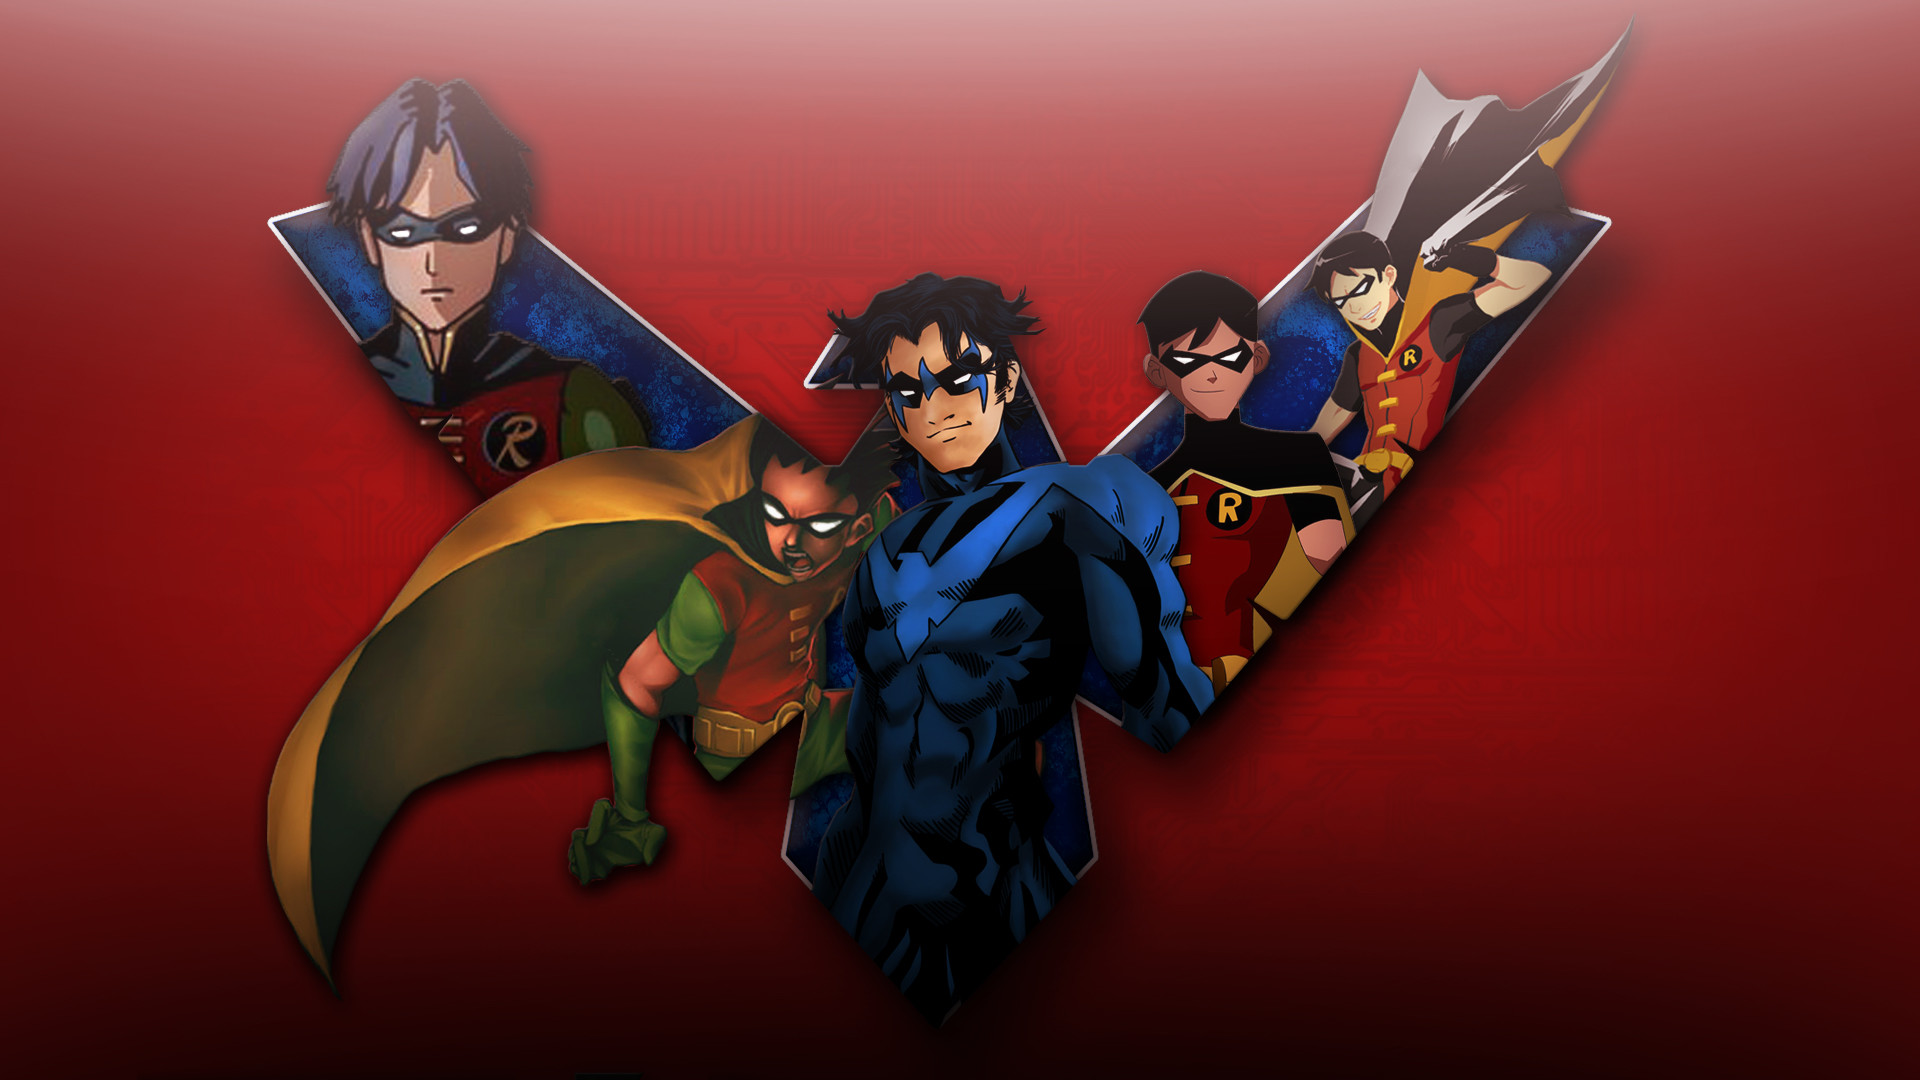 1920x1080 Young Justice Robin Dick Grayson Wallpaper by FeitanPainPacker on ... |  Download Wallpaper | Pinterest | Young justice and Wallpaper